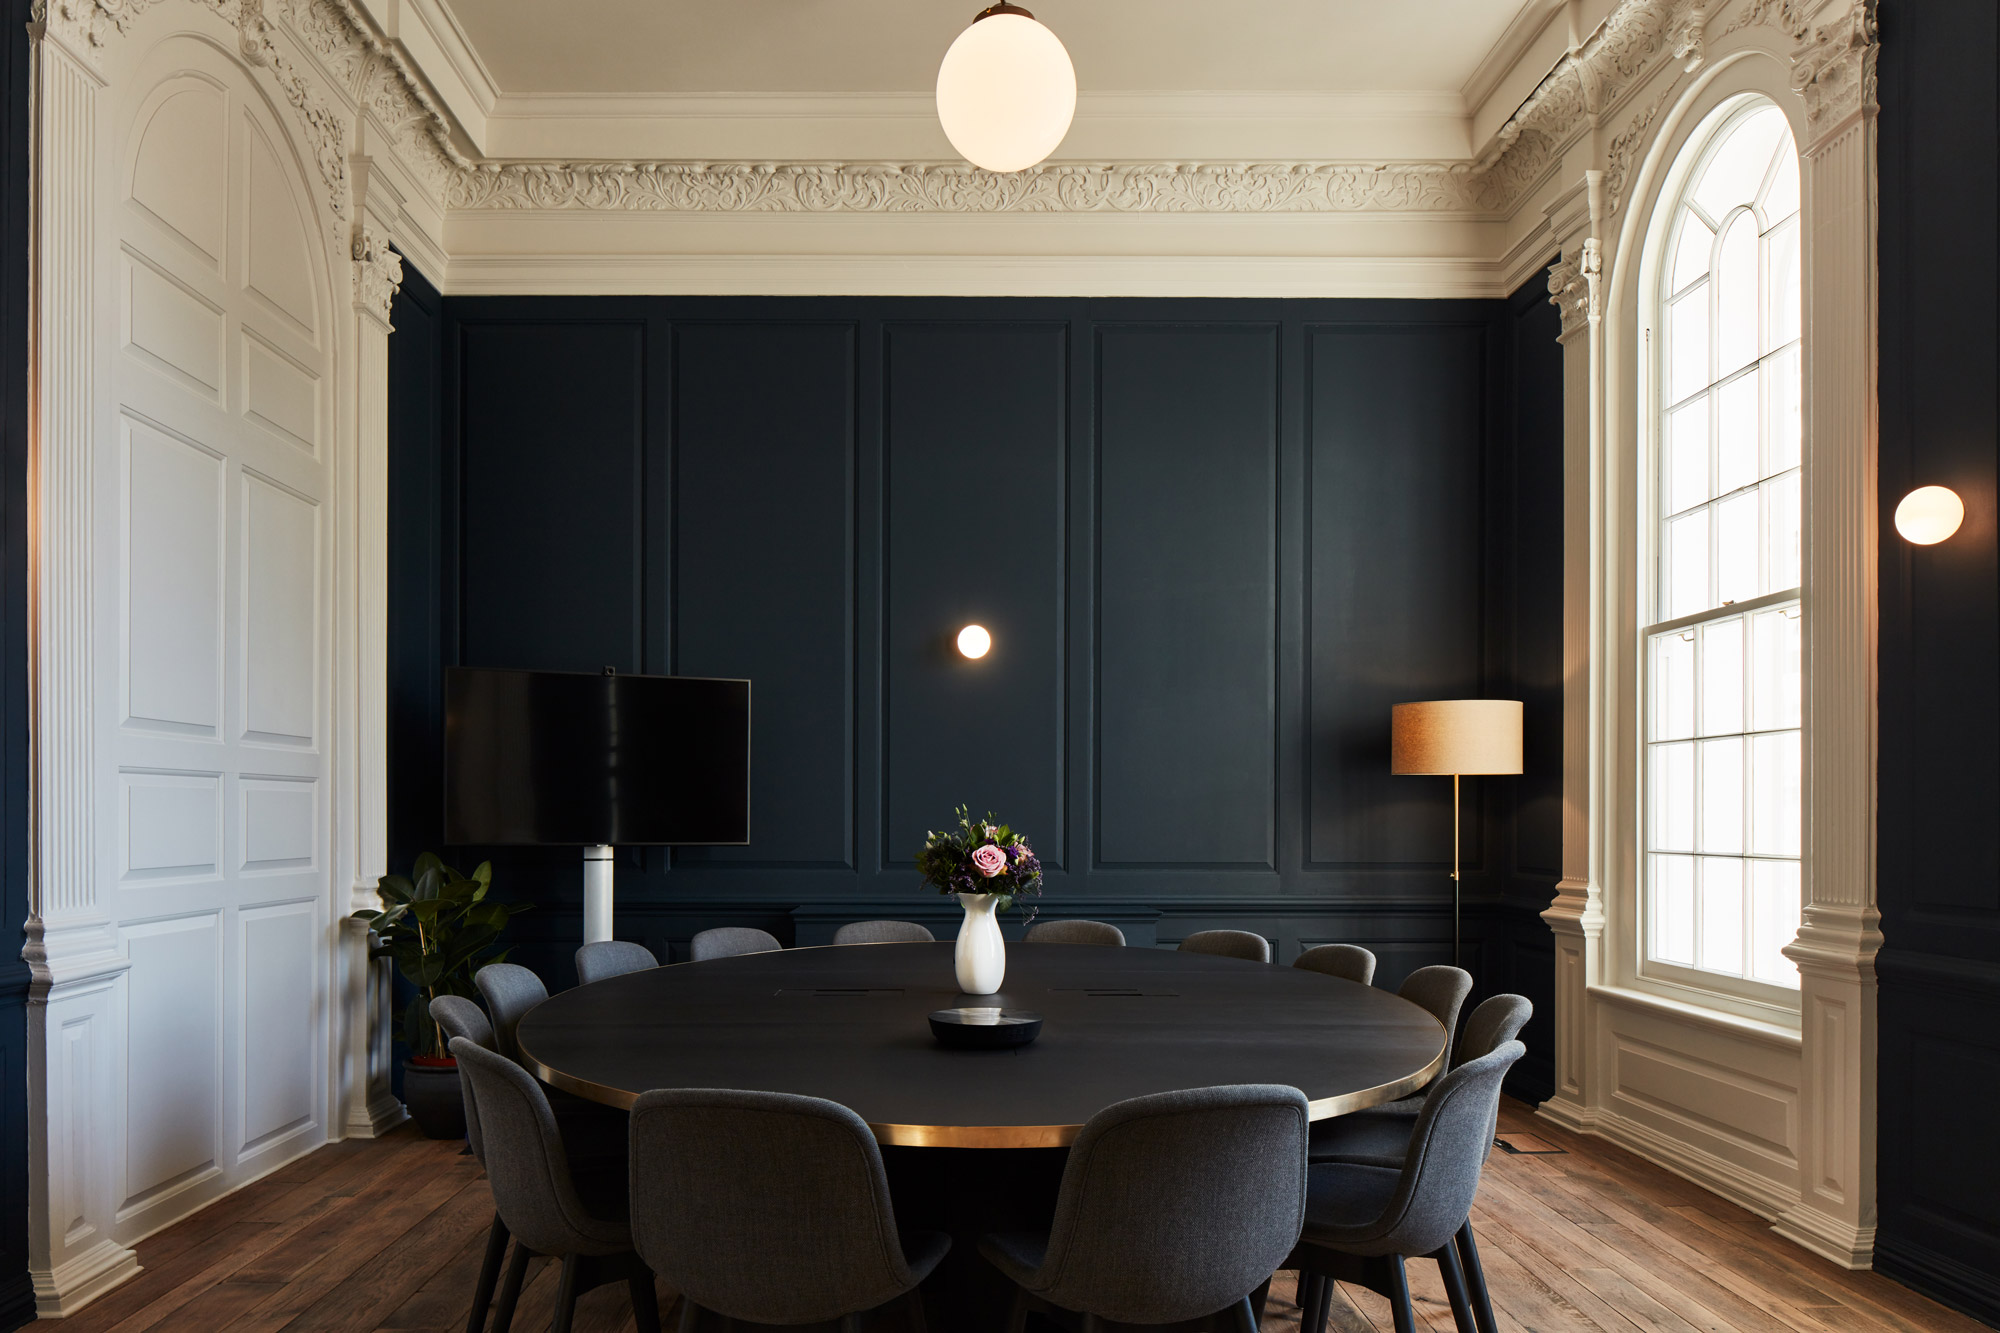 Round dining table with upholstered chairs and painted blue panelled wall